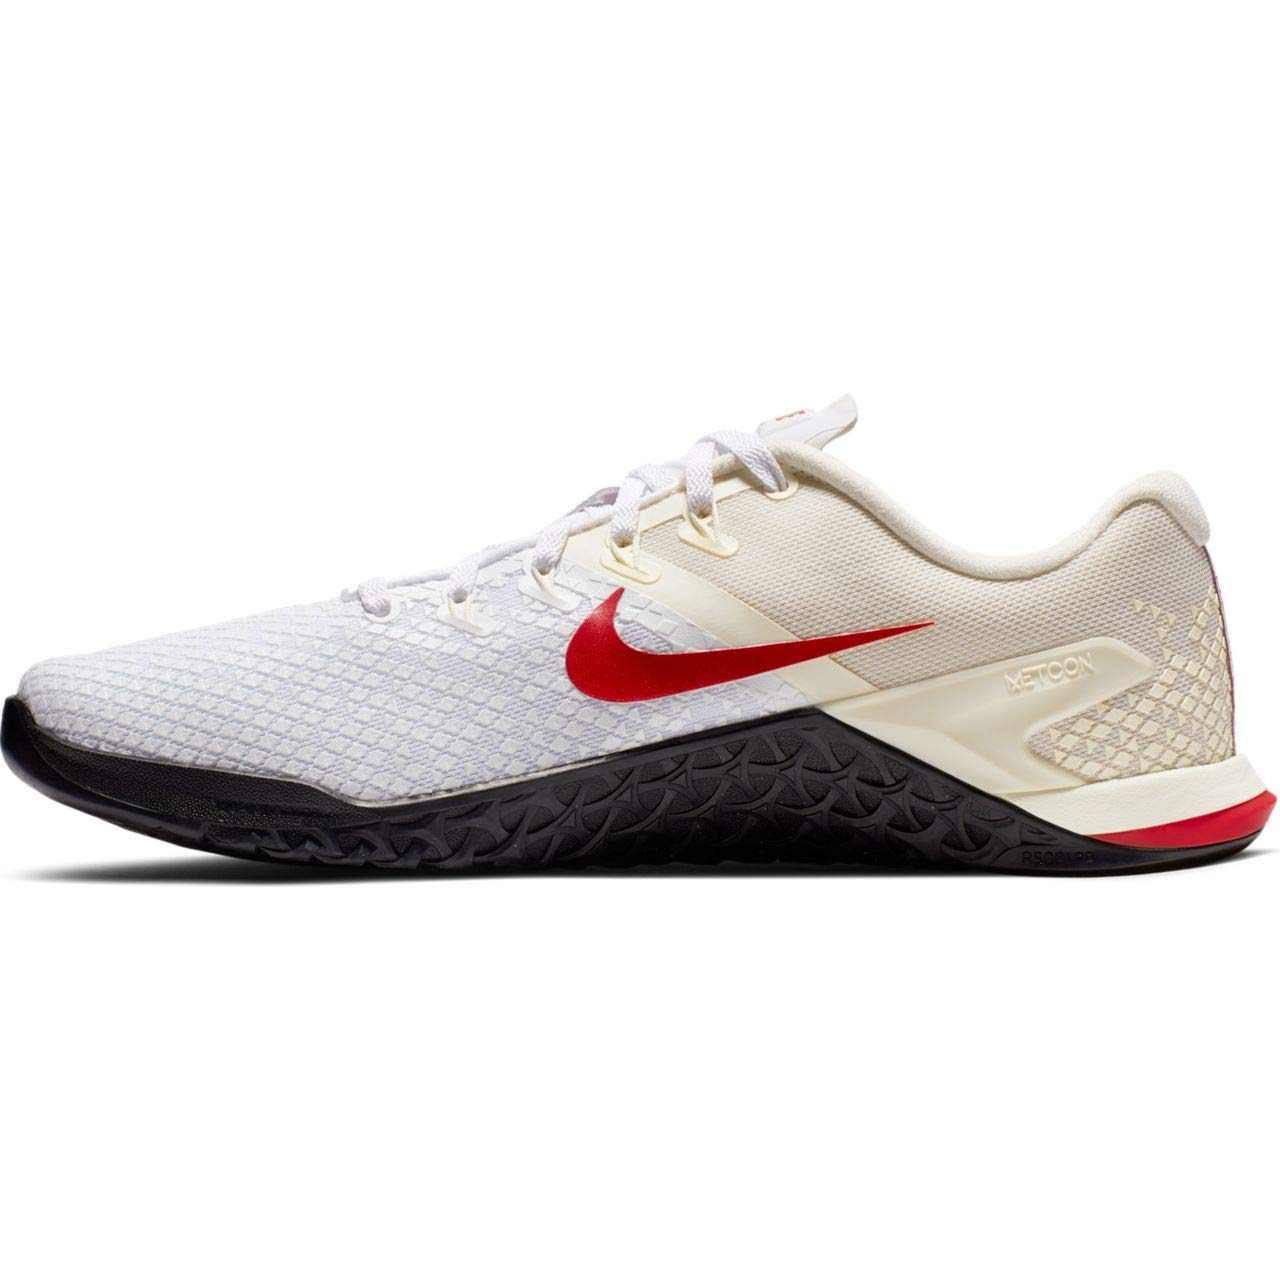 MultiCouleure (Pale Ivory Mystic rouge blanc Club or 000) 47 EU Nike Metcon 4 Xd, Chaussures de Fitness Homme